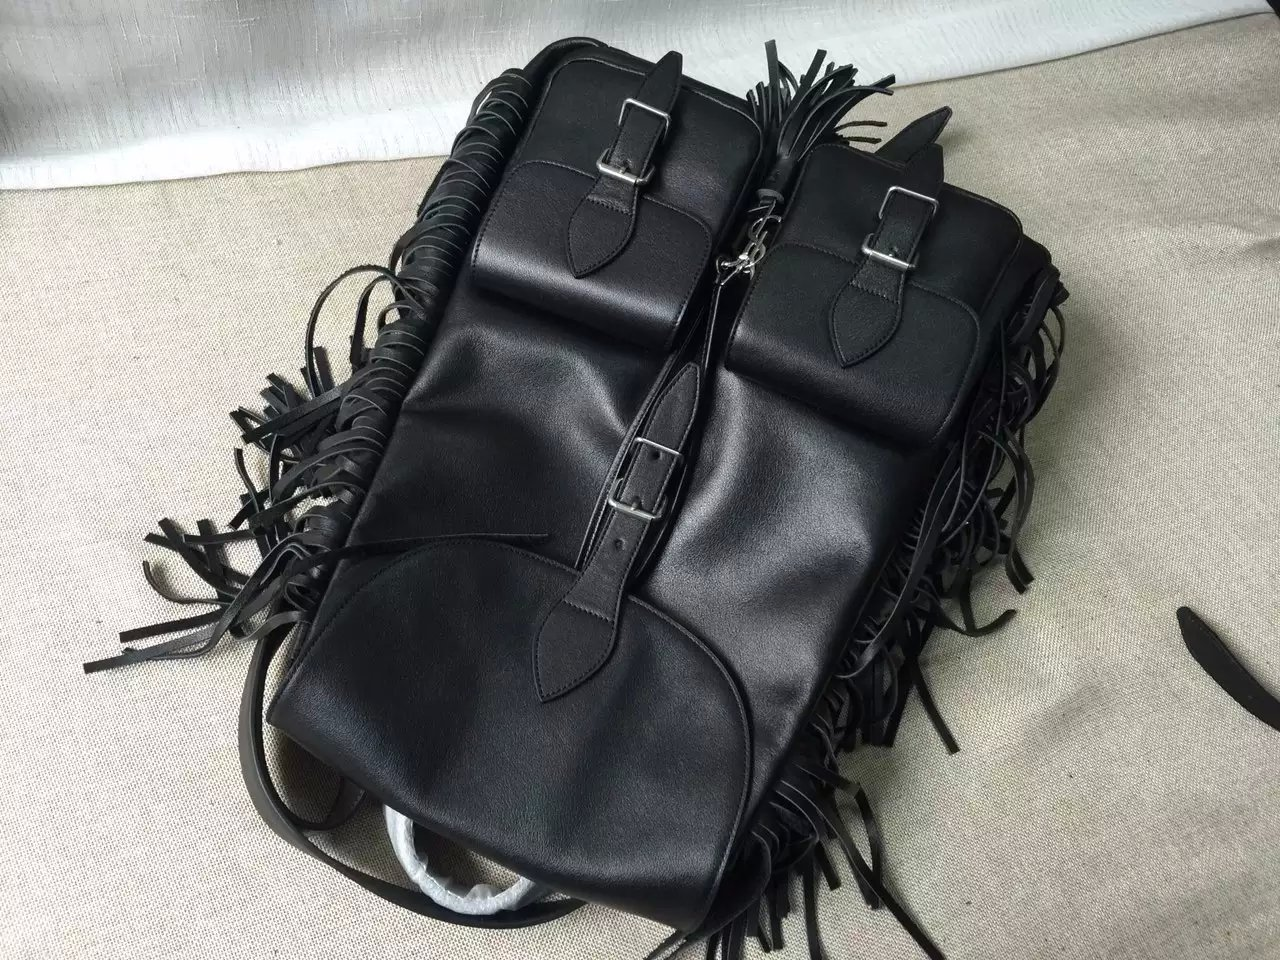 2016 Saint Laurent Bags Cheap Sale-Saint Laurent Festival Fringed Backpack in Black Leather